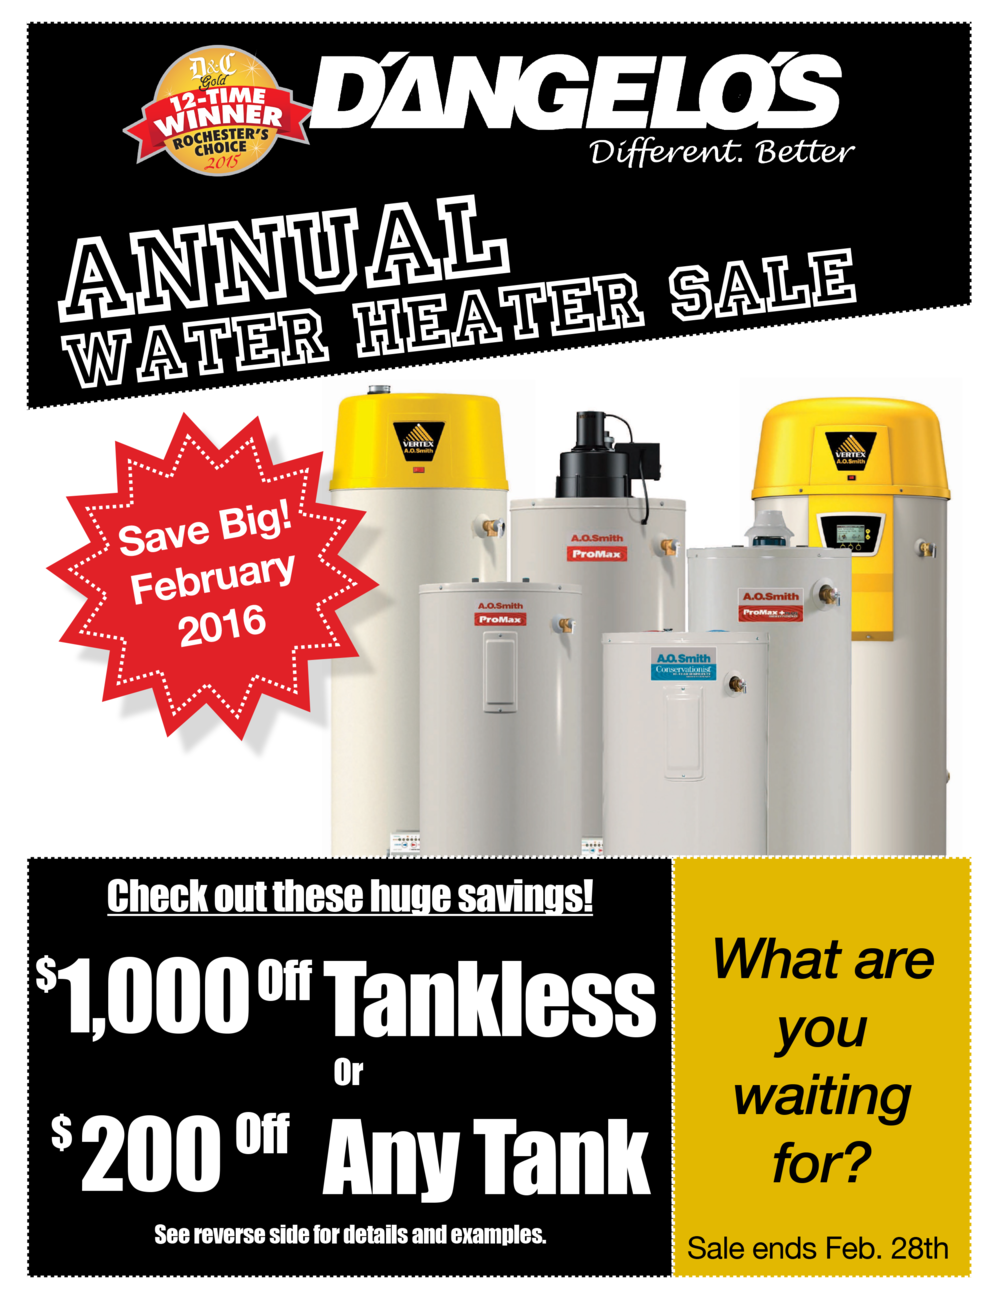 D'Angelo's water heater sale